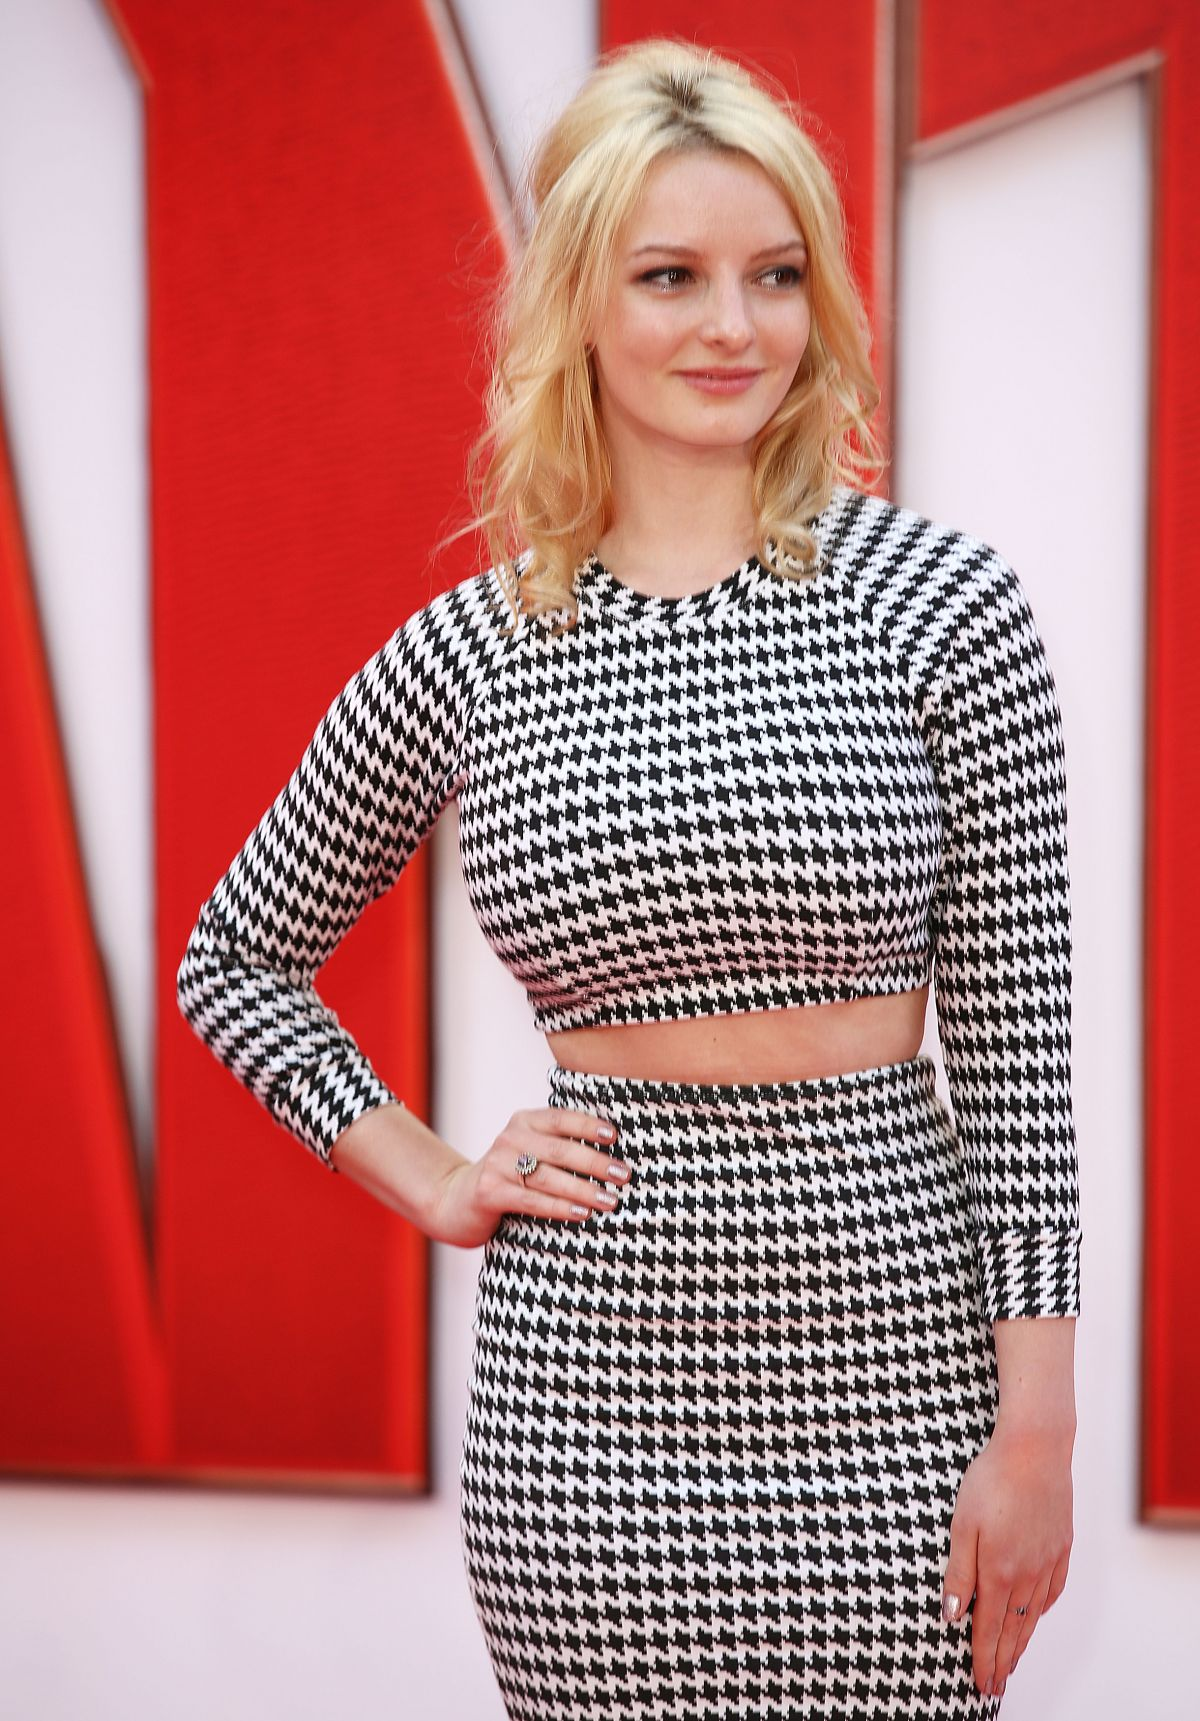 DAKOTA BLUW RICHARDS at Ant-man Premiere in London